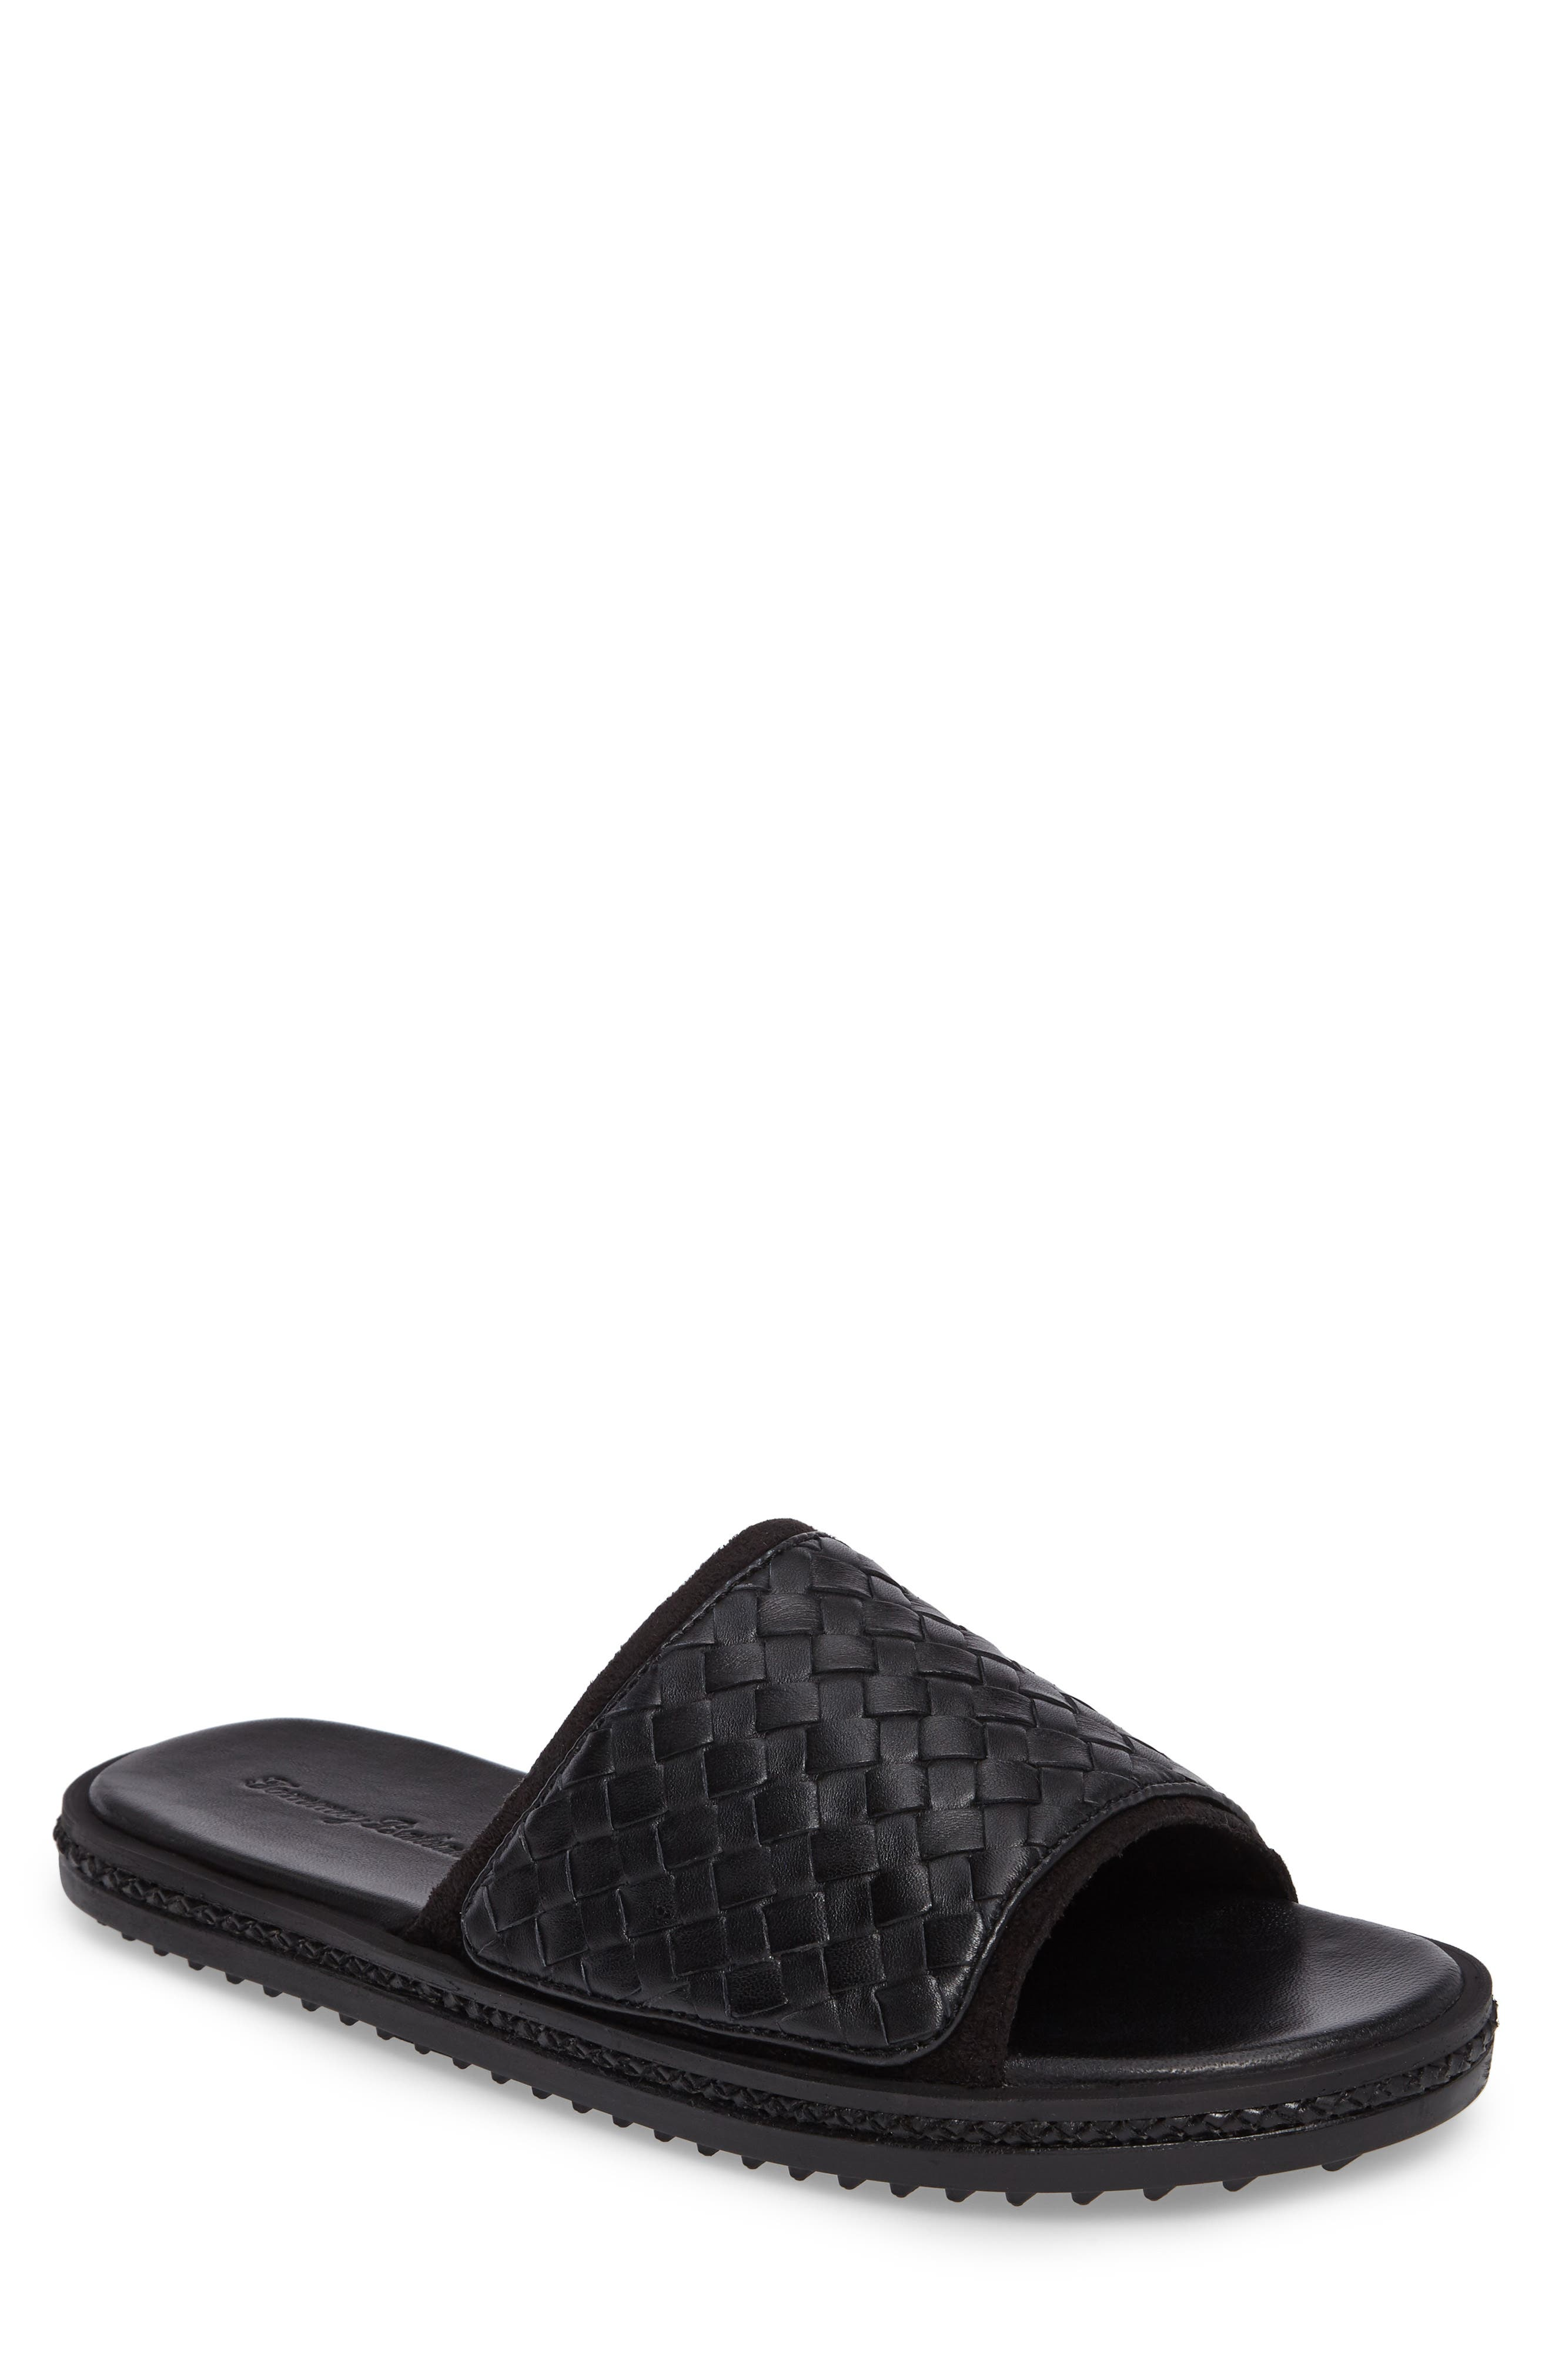 Tommy Bahama Shore Crest Woven Slide Sandal (Men)